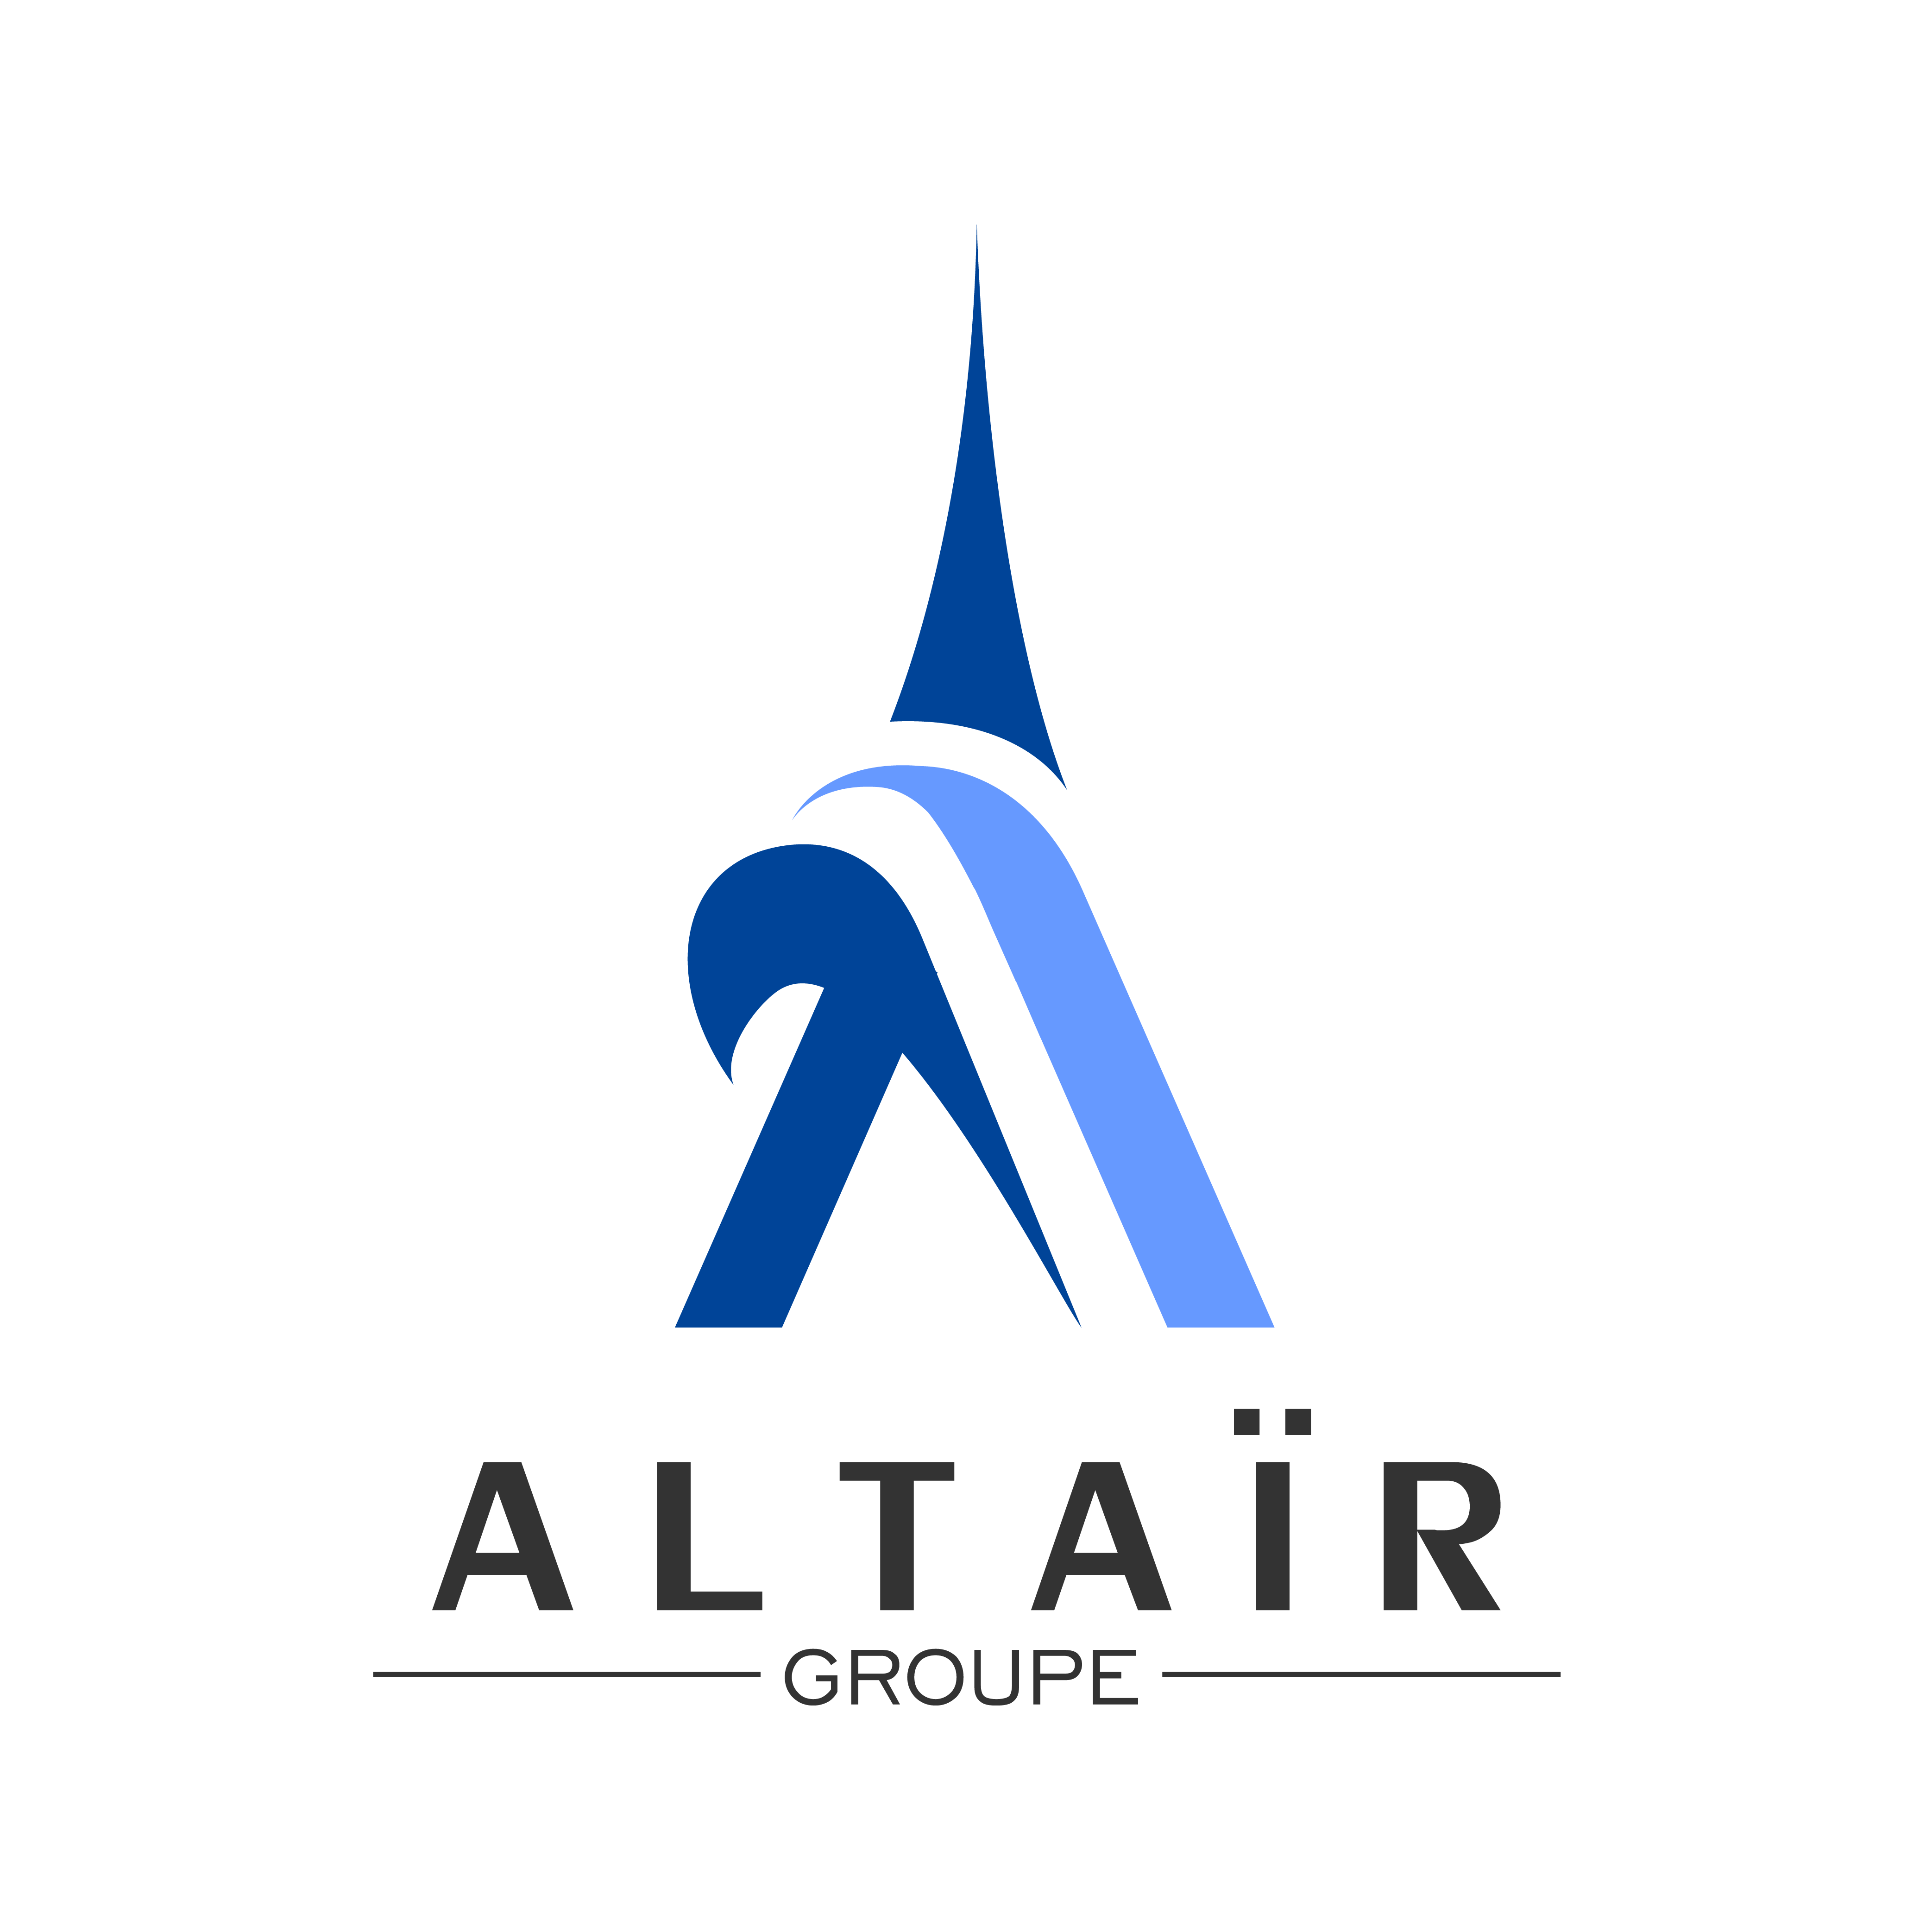 A new and refreshed Logo for ALTAÏR GROUPE